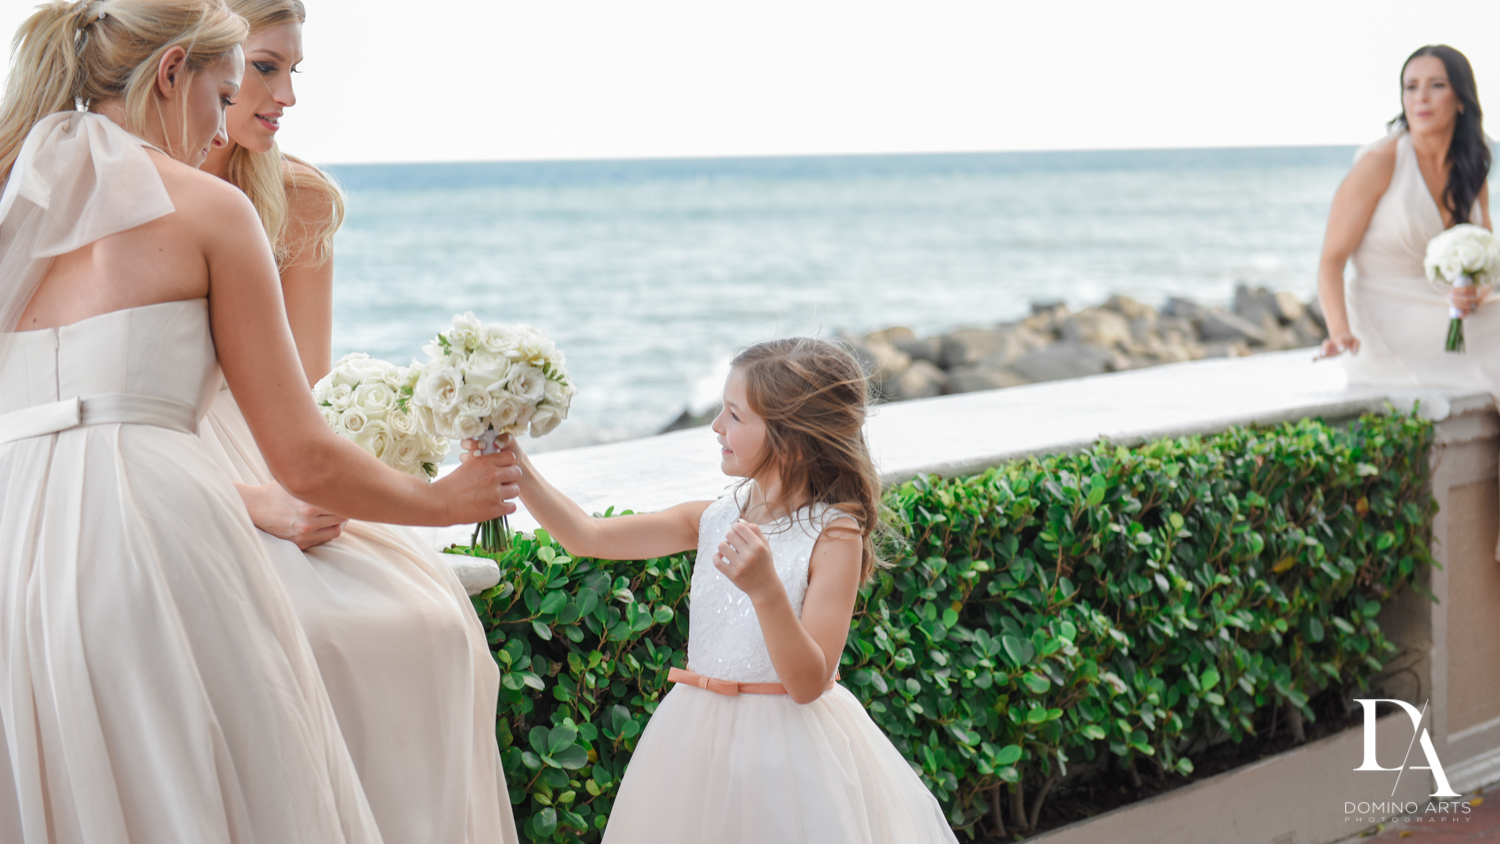 flower girl at Extravagant Wedding at The Breakers Palm Beach by Domino Arts Photography